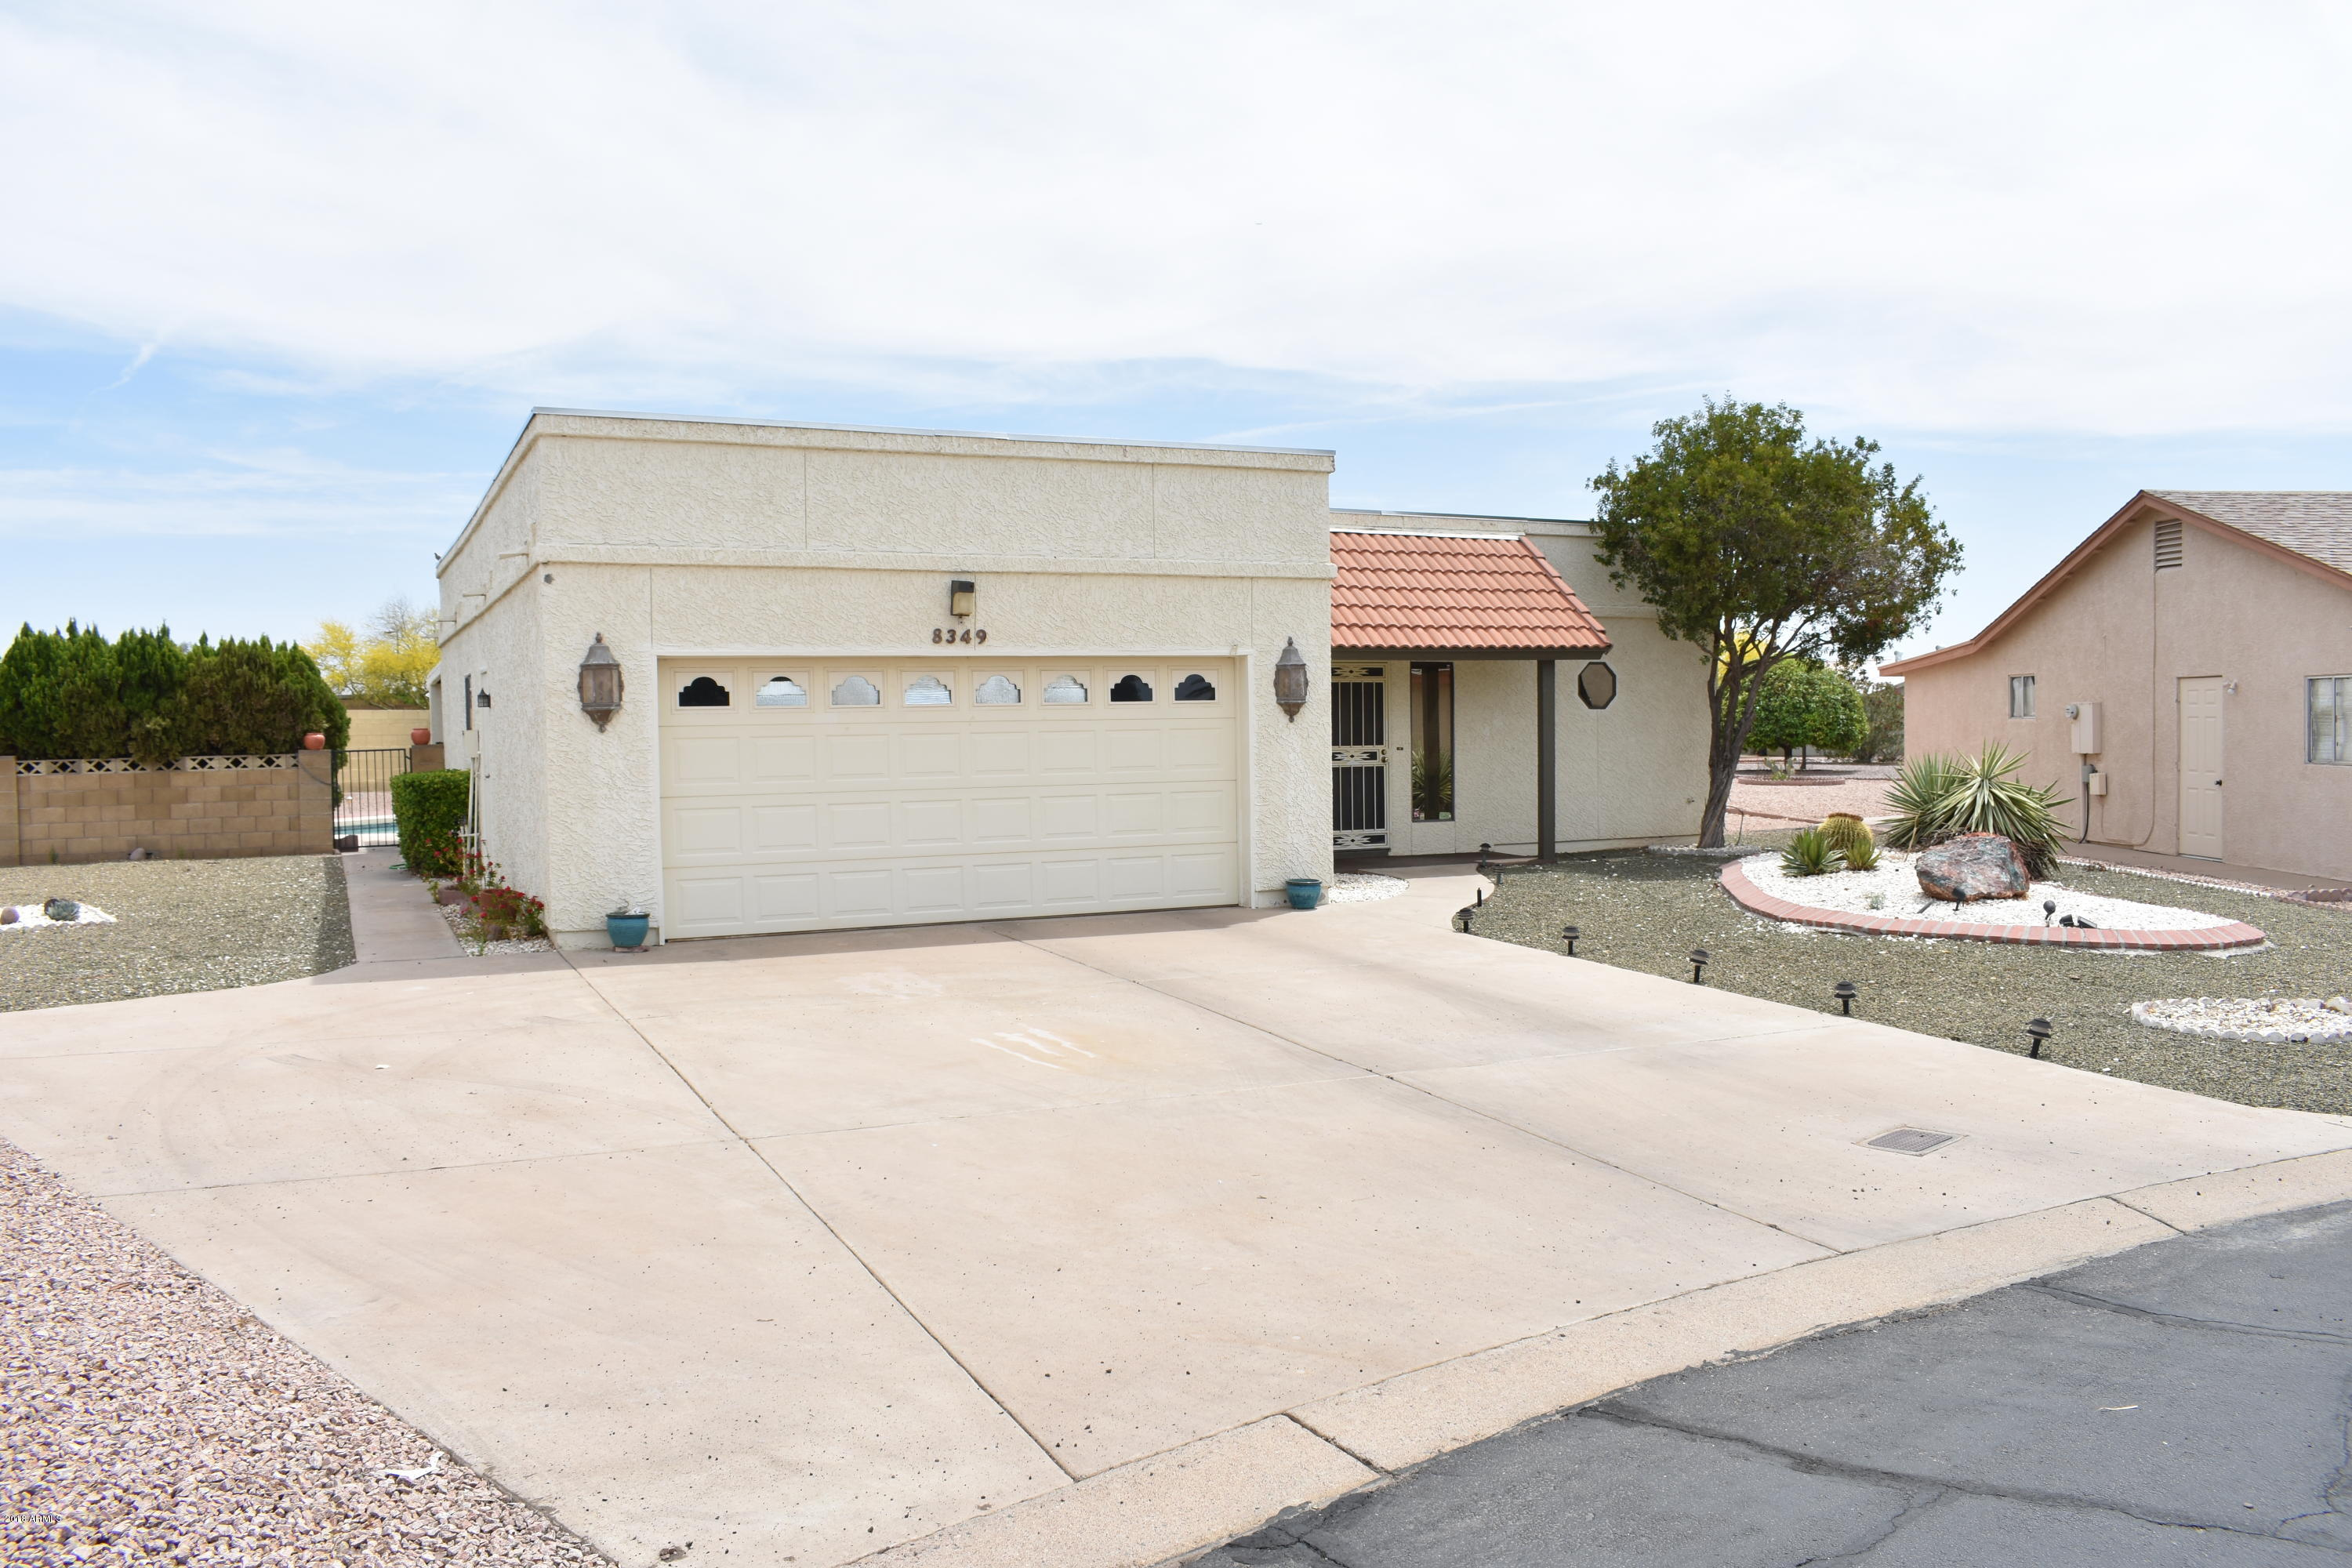 Photo of 8349 E EUCLID Avenue, Mesa, AZ 85208